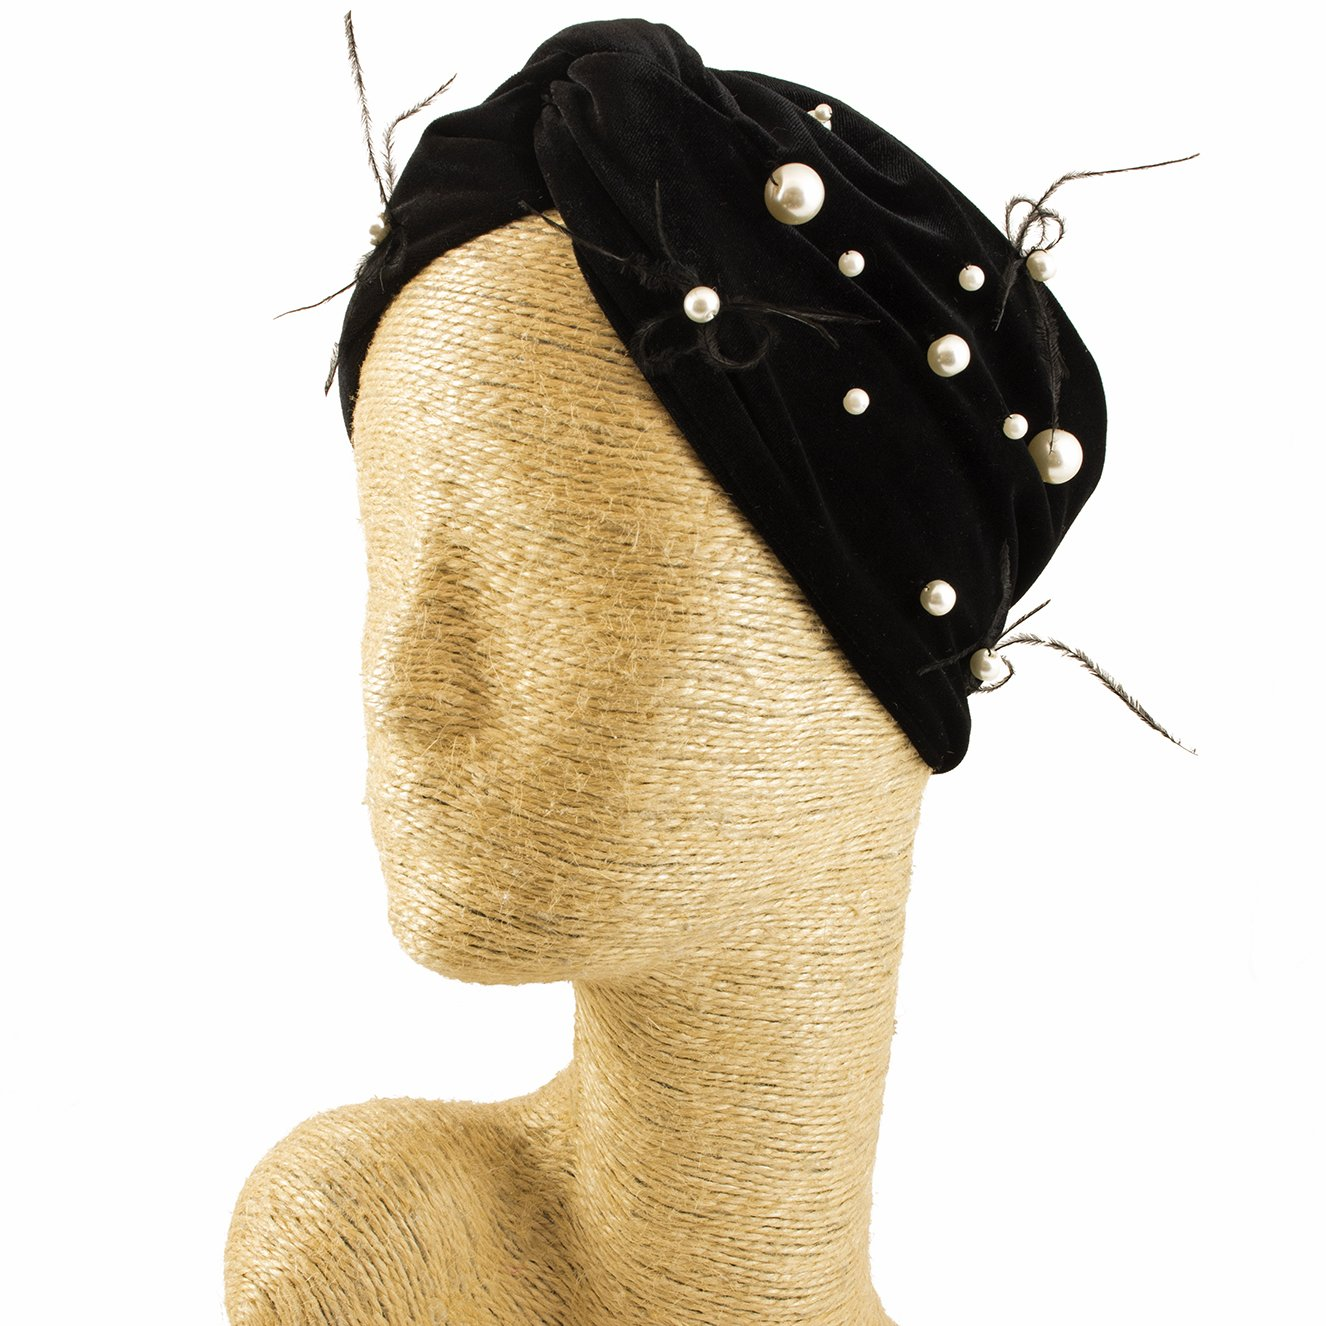 Fascinator, Velvet Headbands, Millinery, Worldwide Free Shipment, Delivery in 2 Days, Customized, Costume, Designer Fashion, Pearl, Head wrap, Boho Accessories, Black, Beaded, Feather, Jewelled